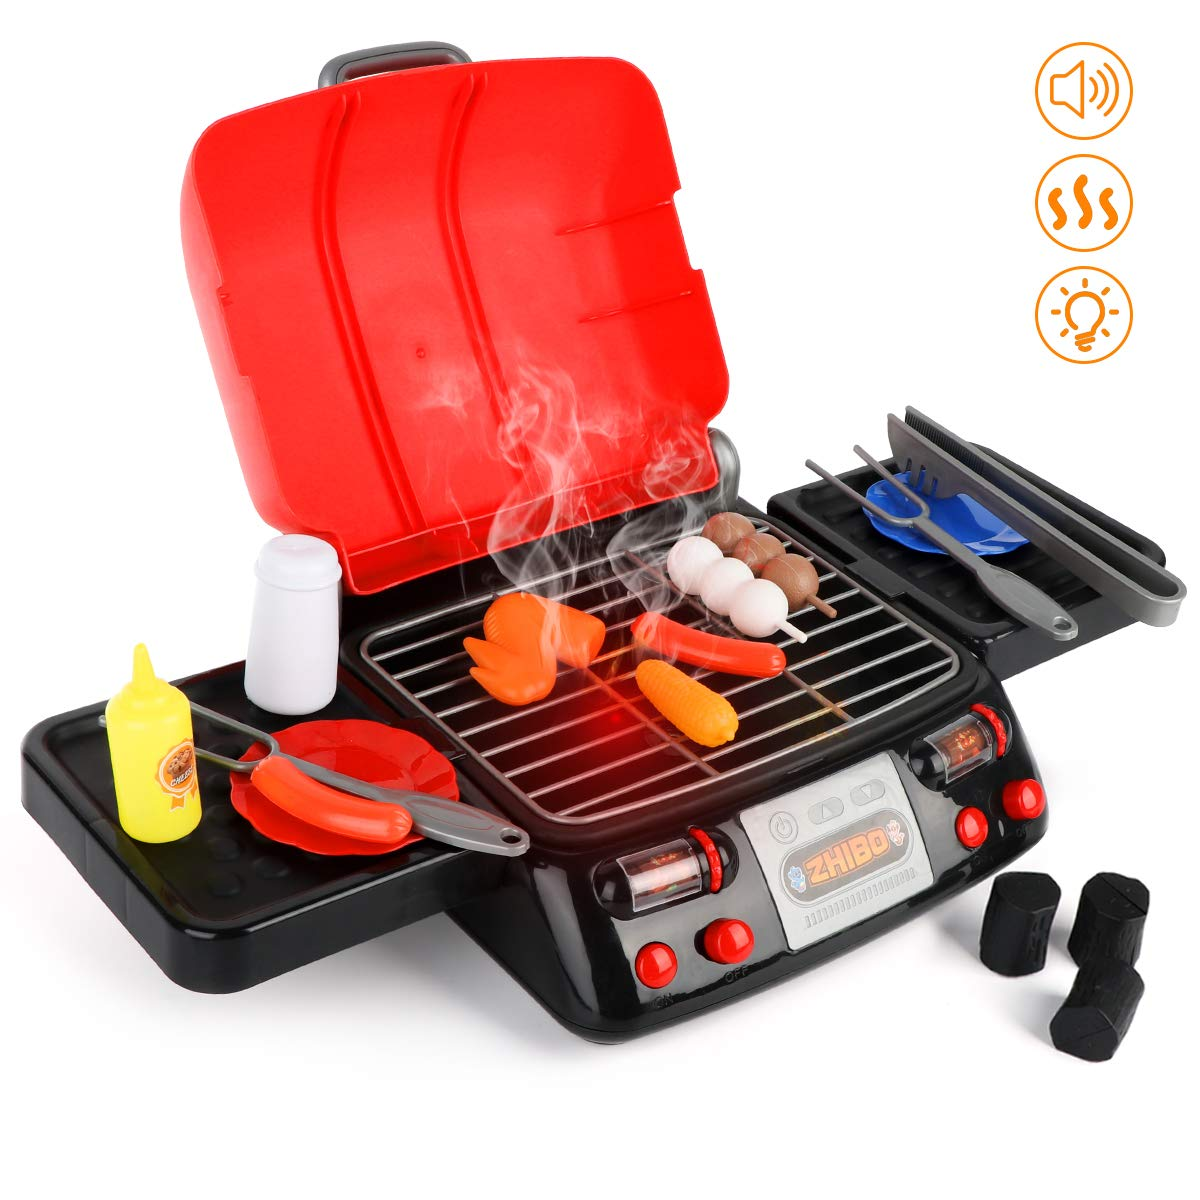 Auggie Kids Play Food Grill with Pretend Smoke Sound Light Kitchen Playset Pretend BBQ Accessories Fine Motor Skills Toy Cooking Gift for Toddlers Children Boys Girls